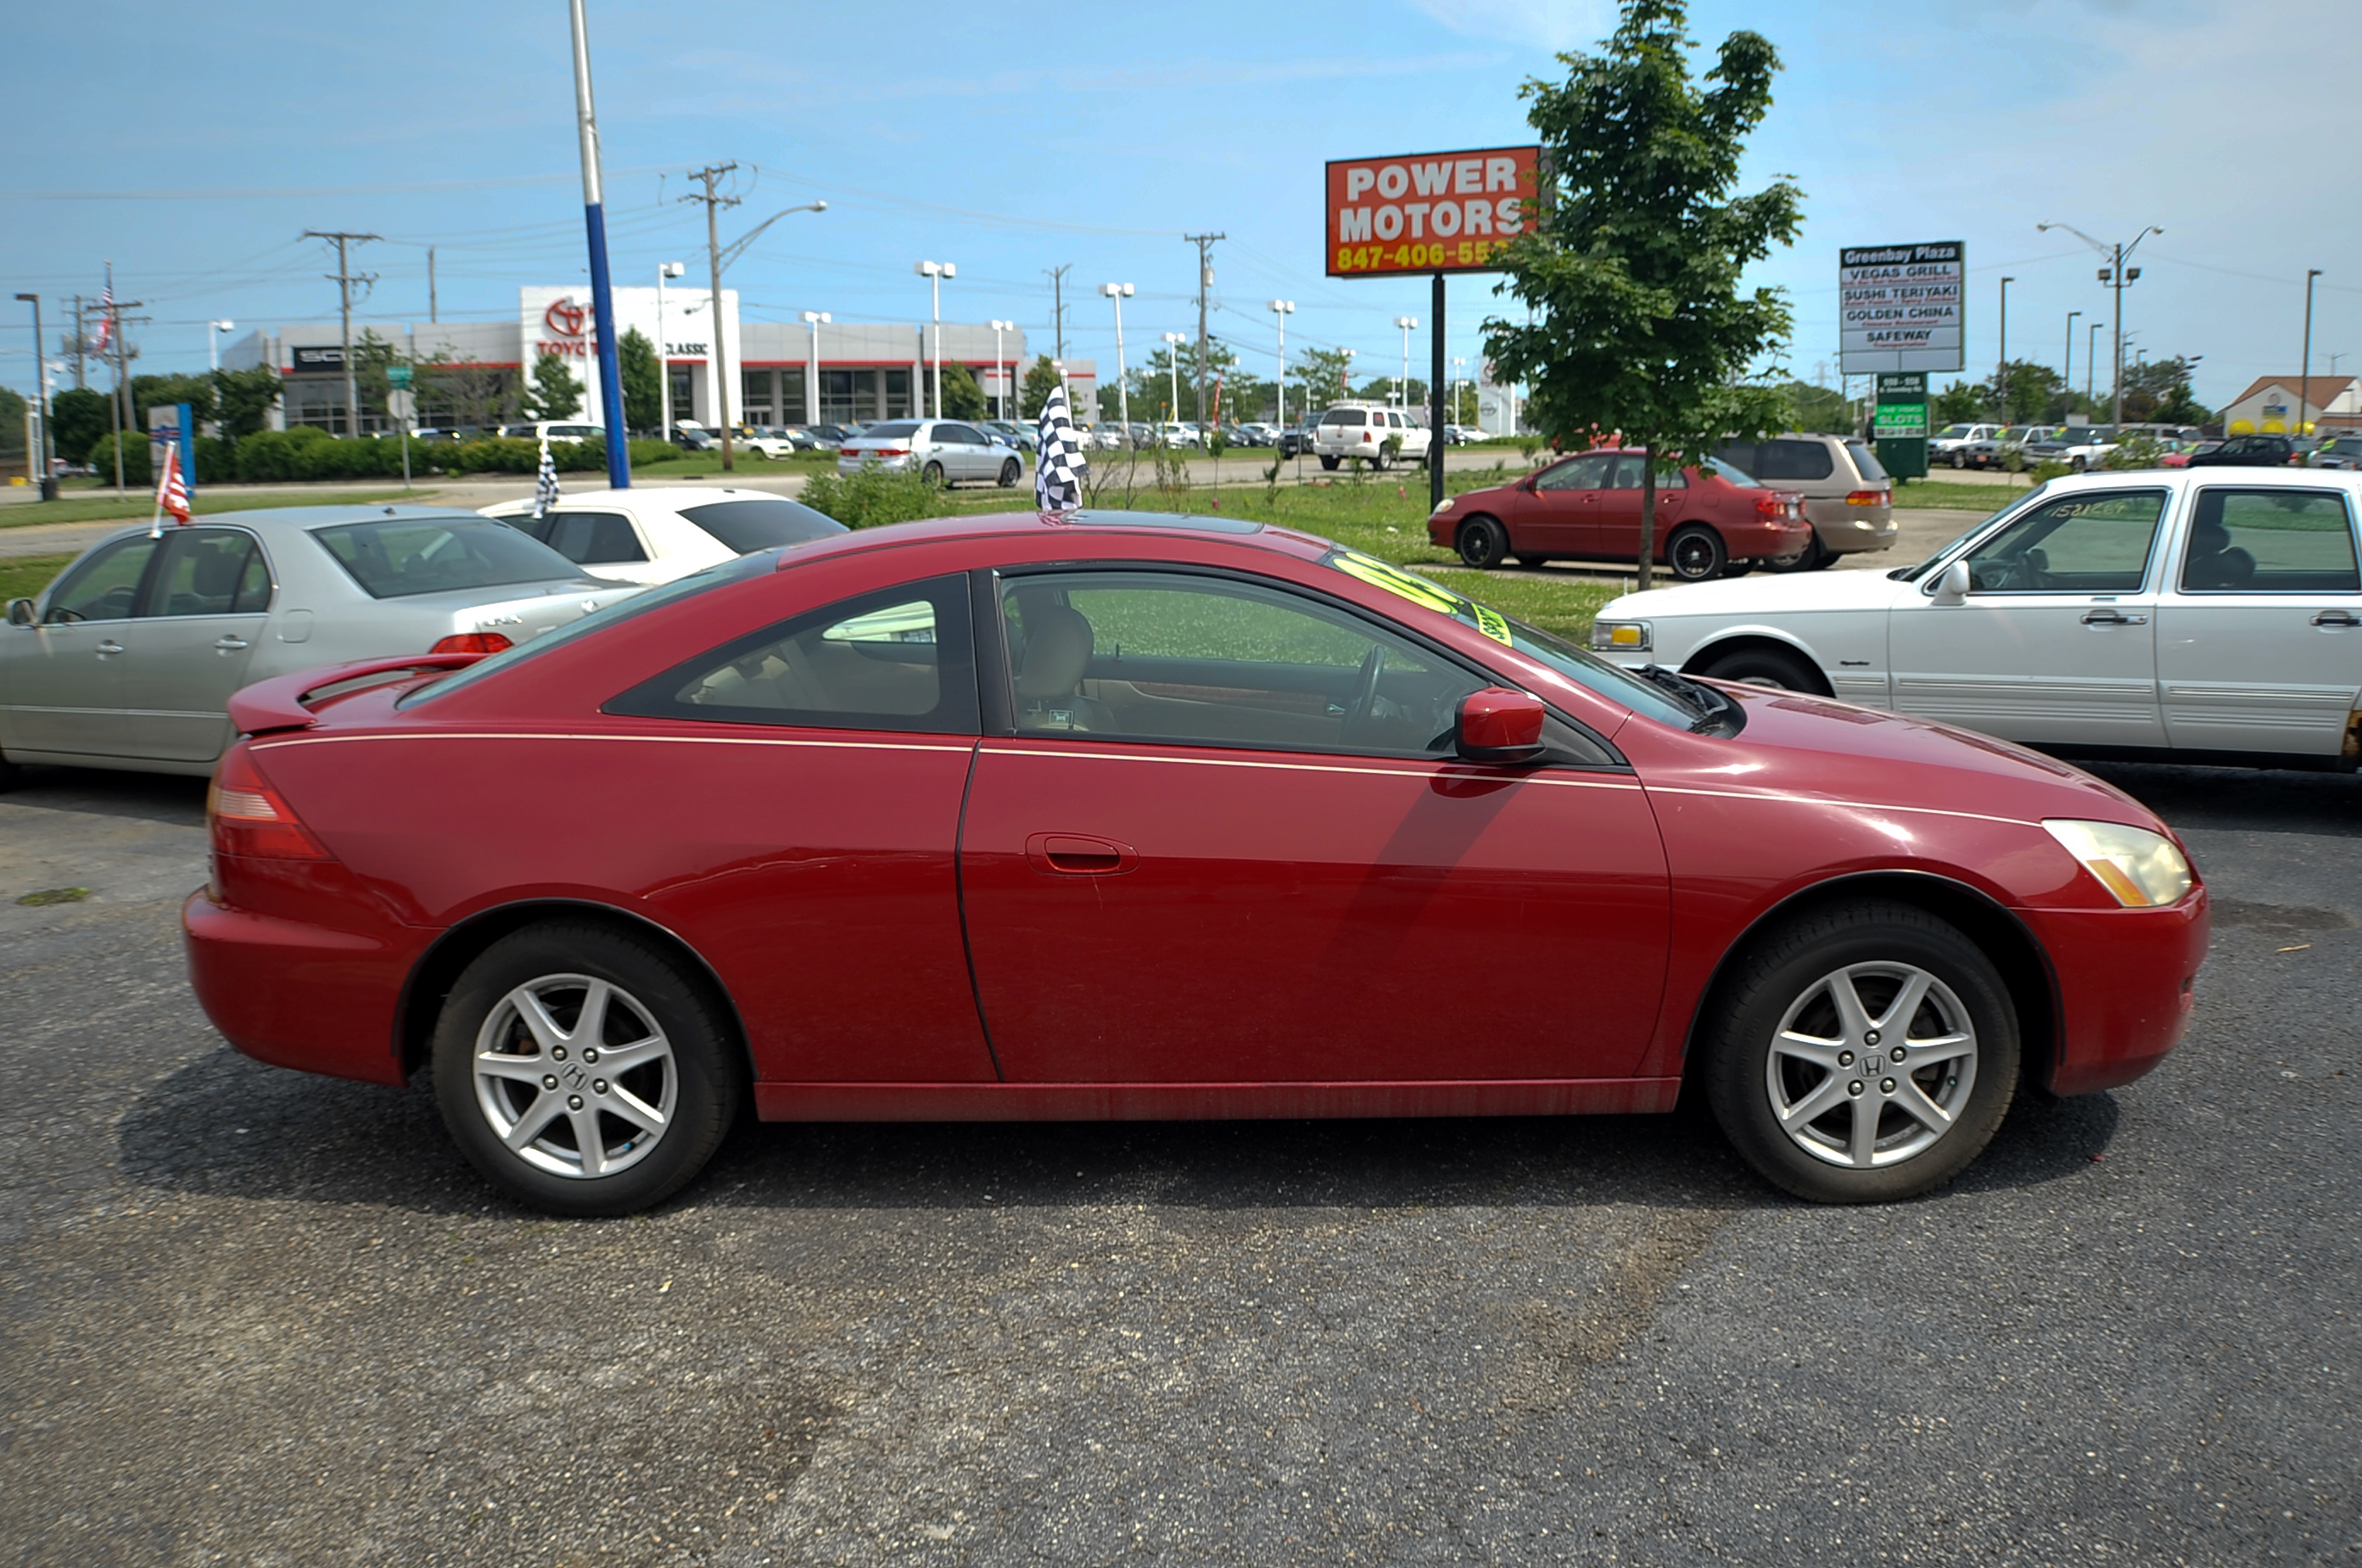 ... 2003 Honda Accord Red V6 Sport Coupe Used Car Sale Beach Park  Lindenhurst ...